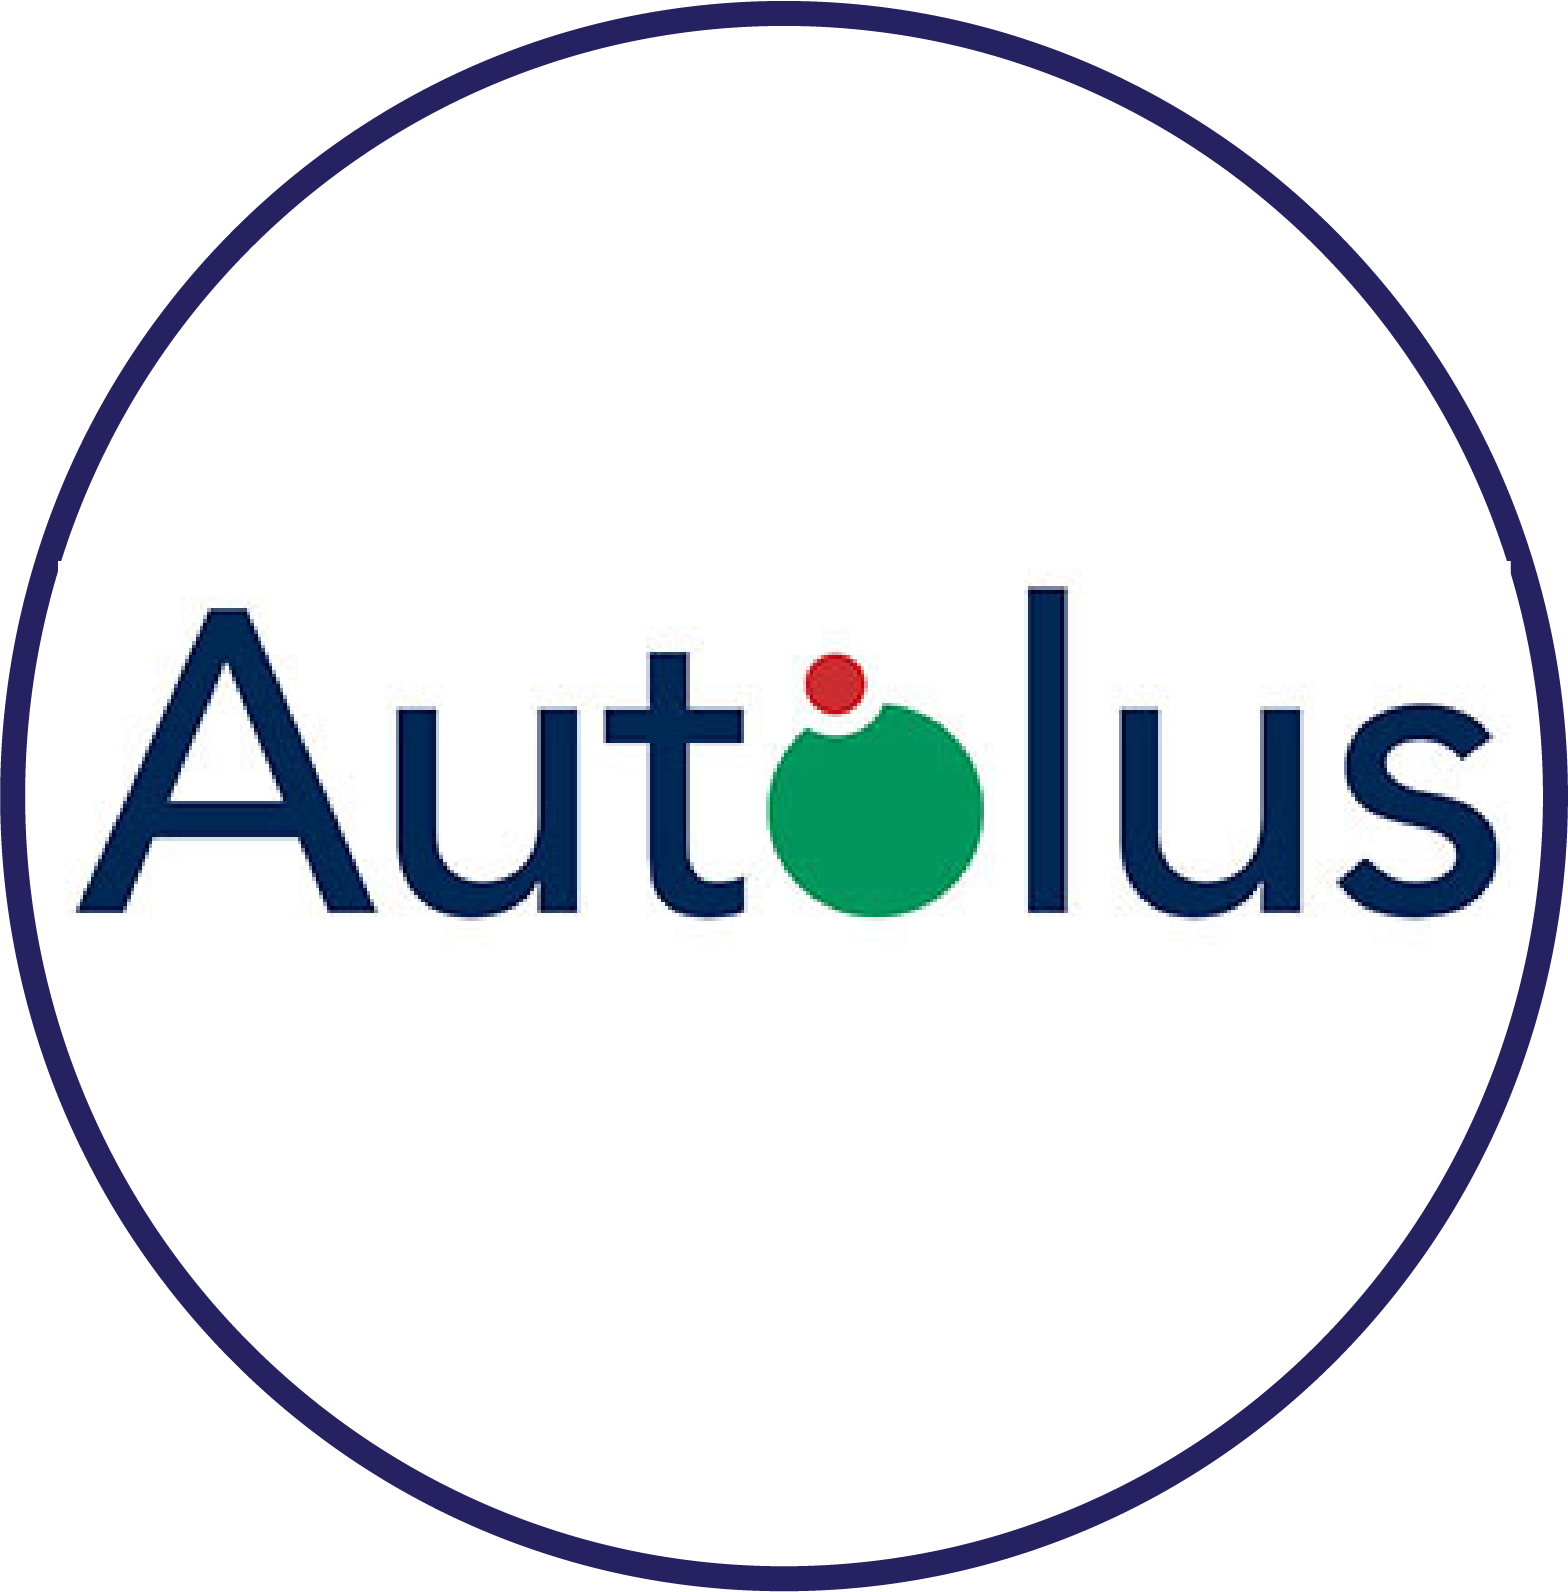 Nick Russell - Operations Director, Autolus